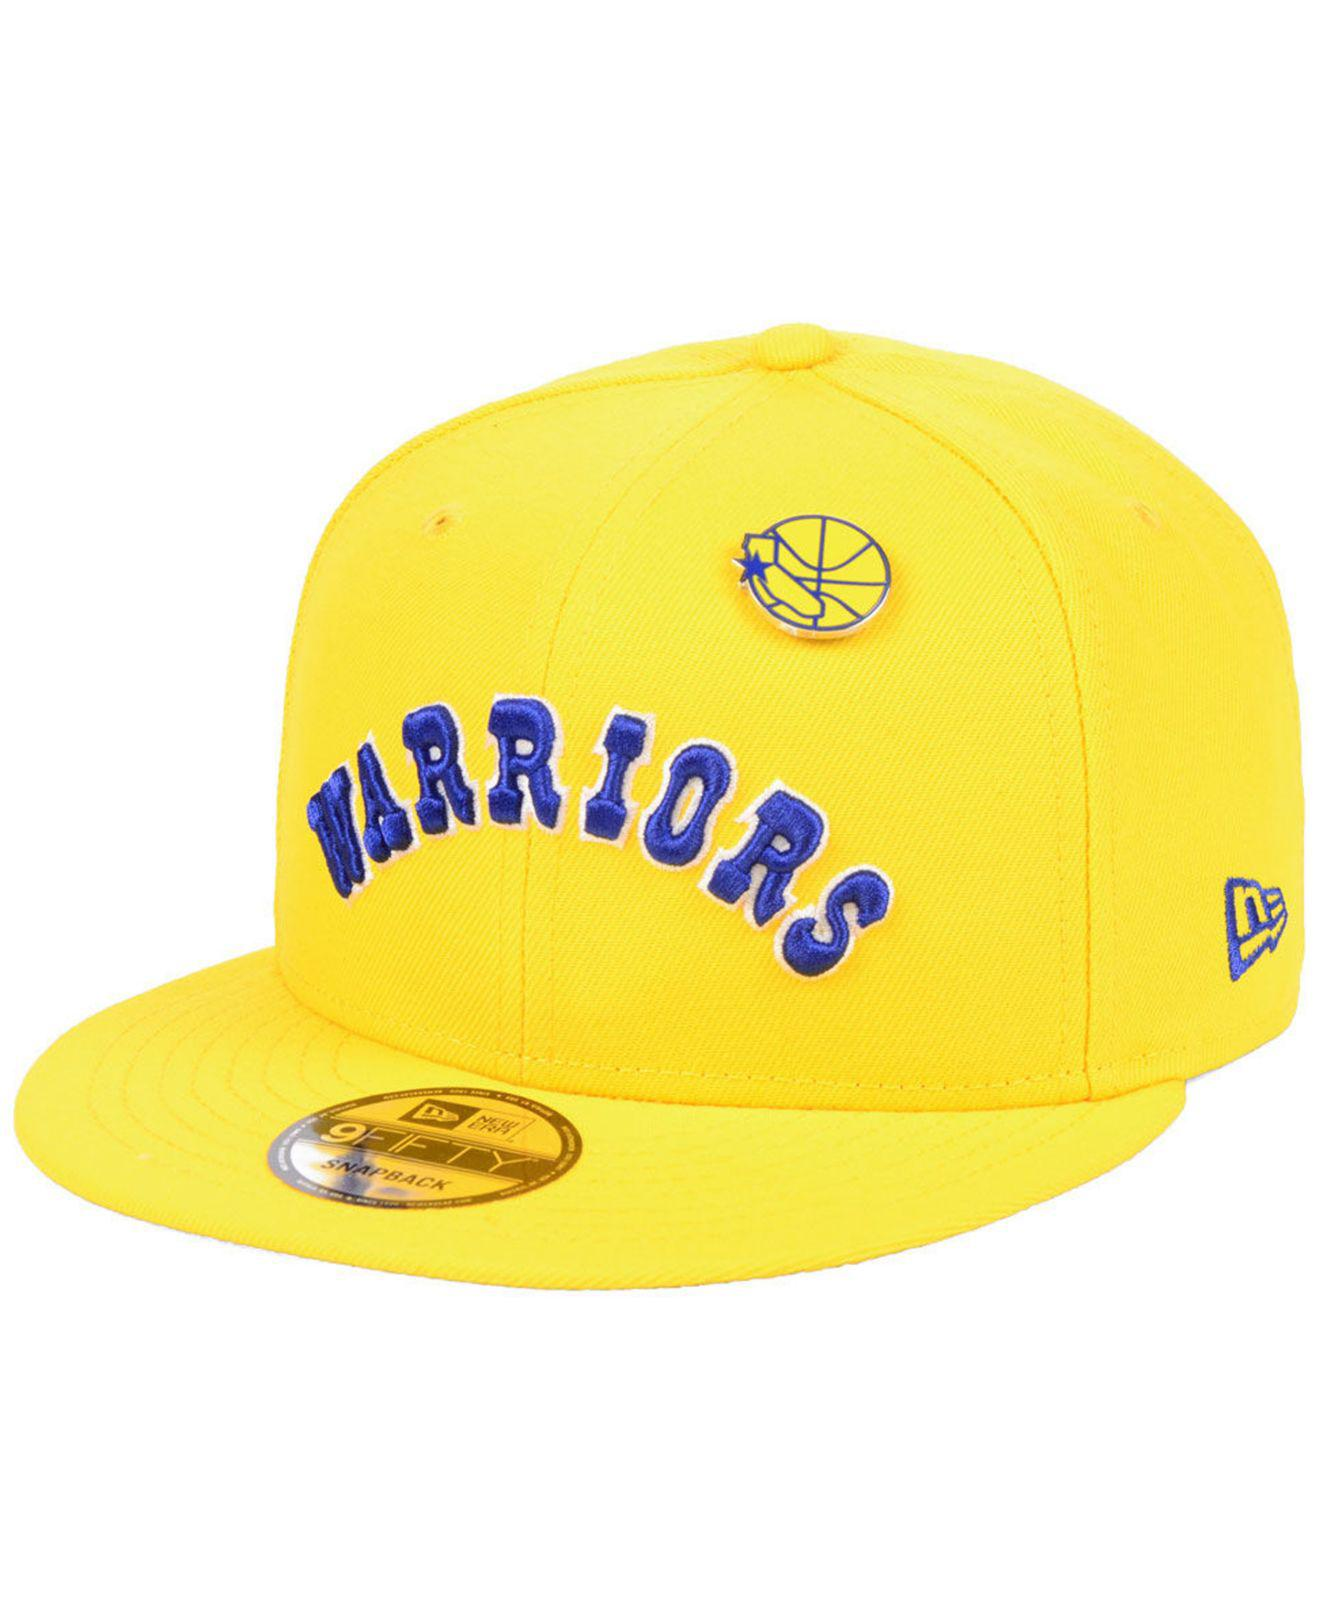 reputable site be8f7 3a026 ... ireland ktz. mens yellow golden state warriors hardwood classic nights  pin 9fifty snapback cap 1c060